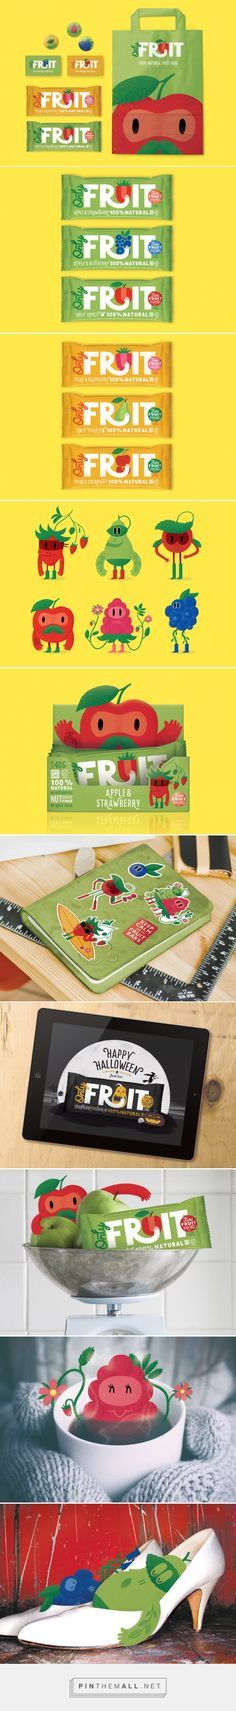 Only Fruit #fruitbar #concept #packaging designed by Maria Mordvintseva-Keeler - http://www.packagingoftheworld.com/2015/07/only-fruit-concept.html